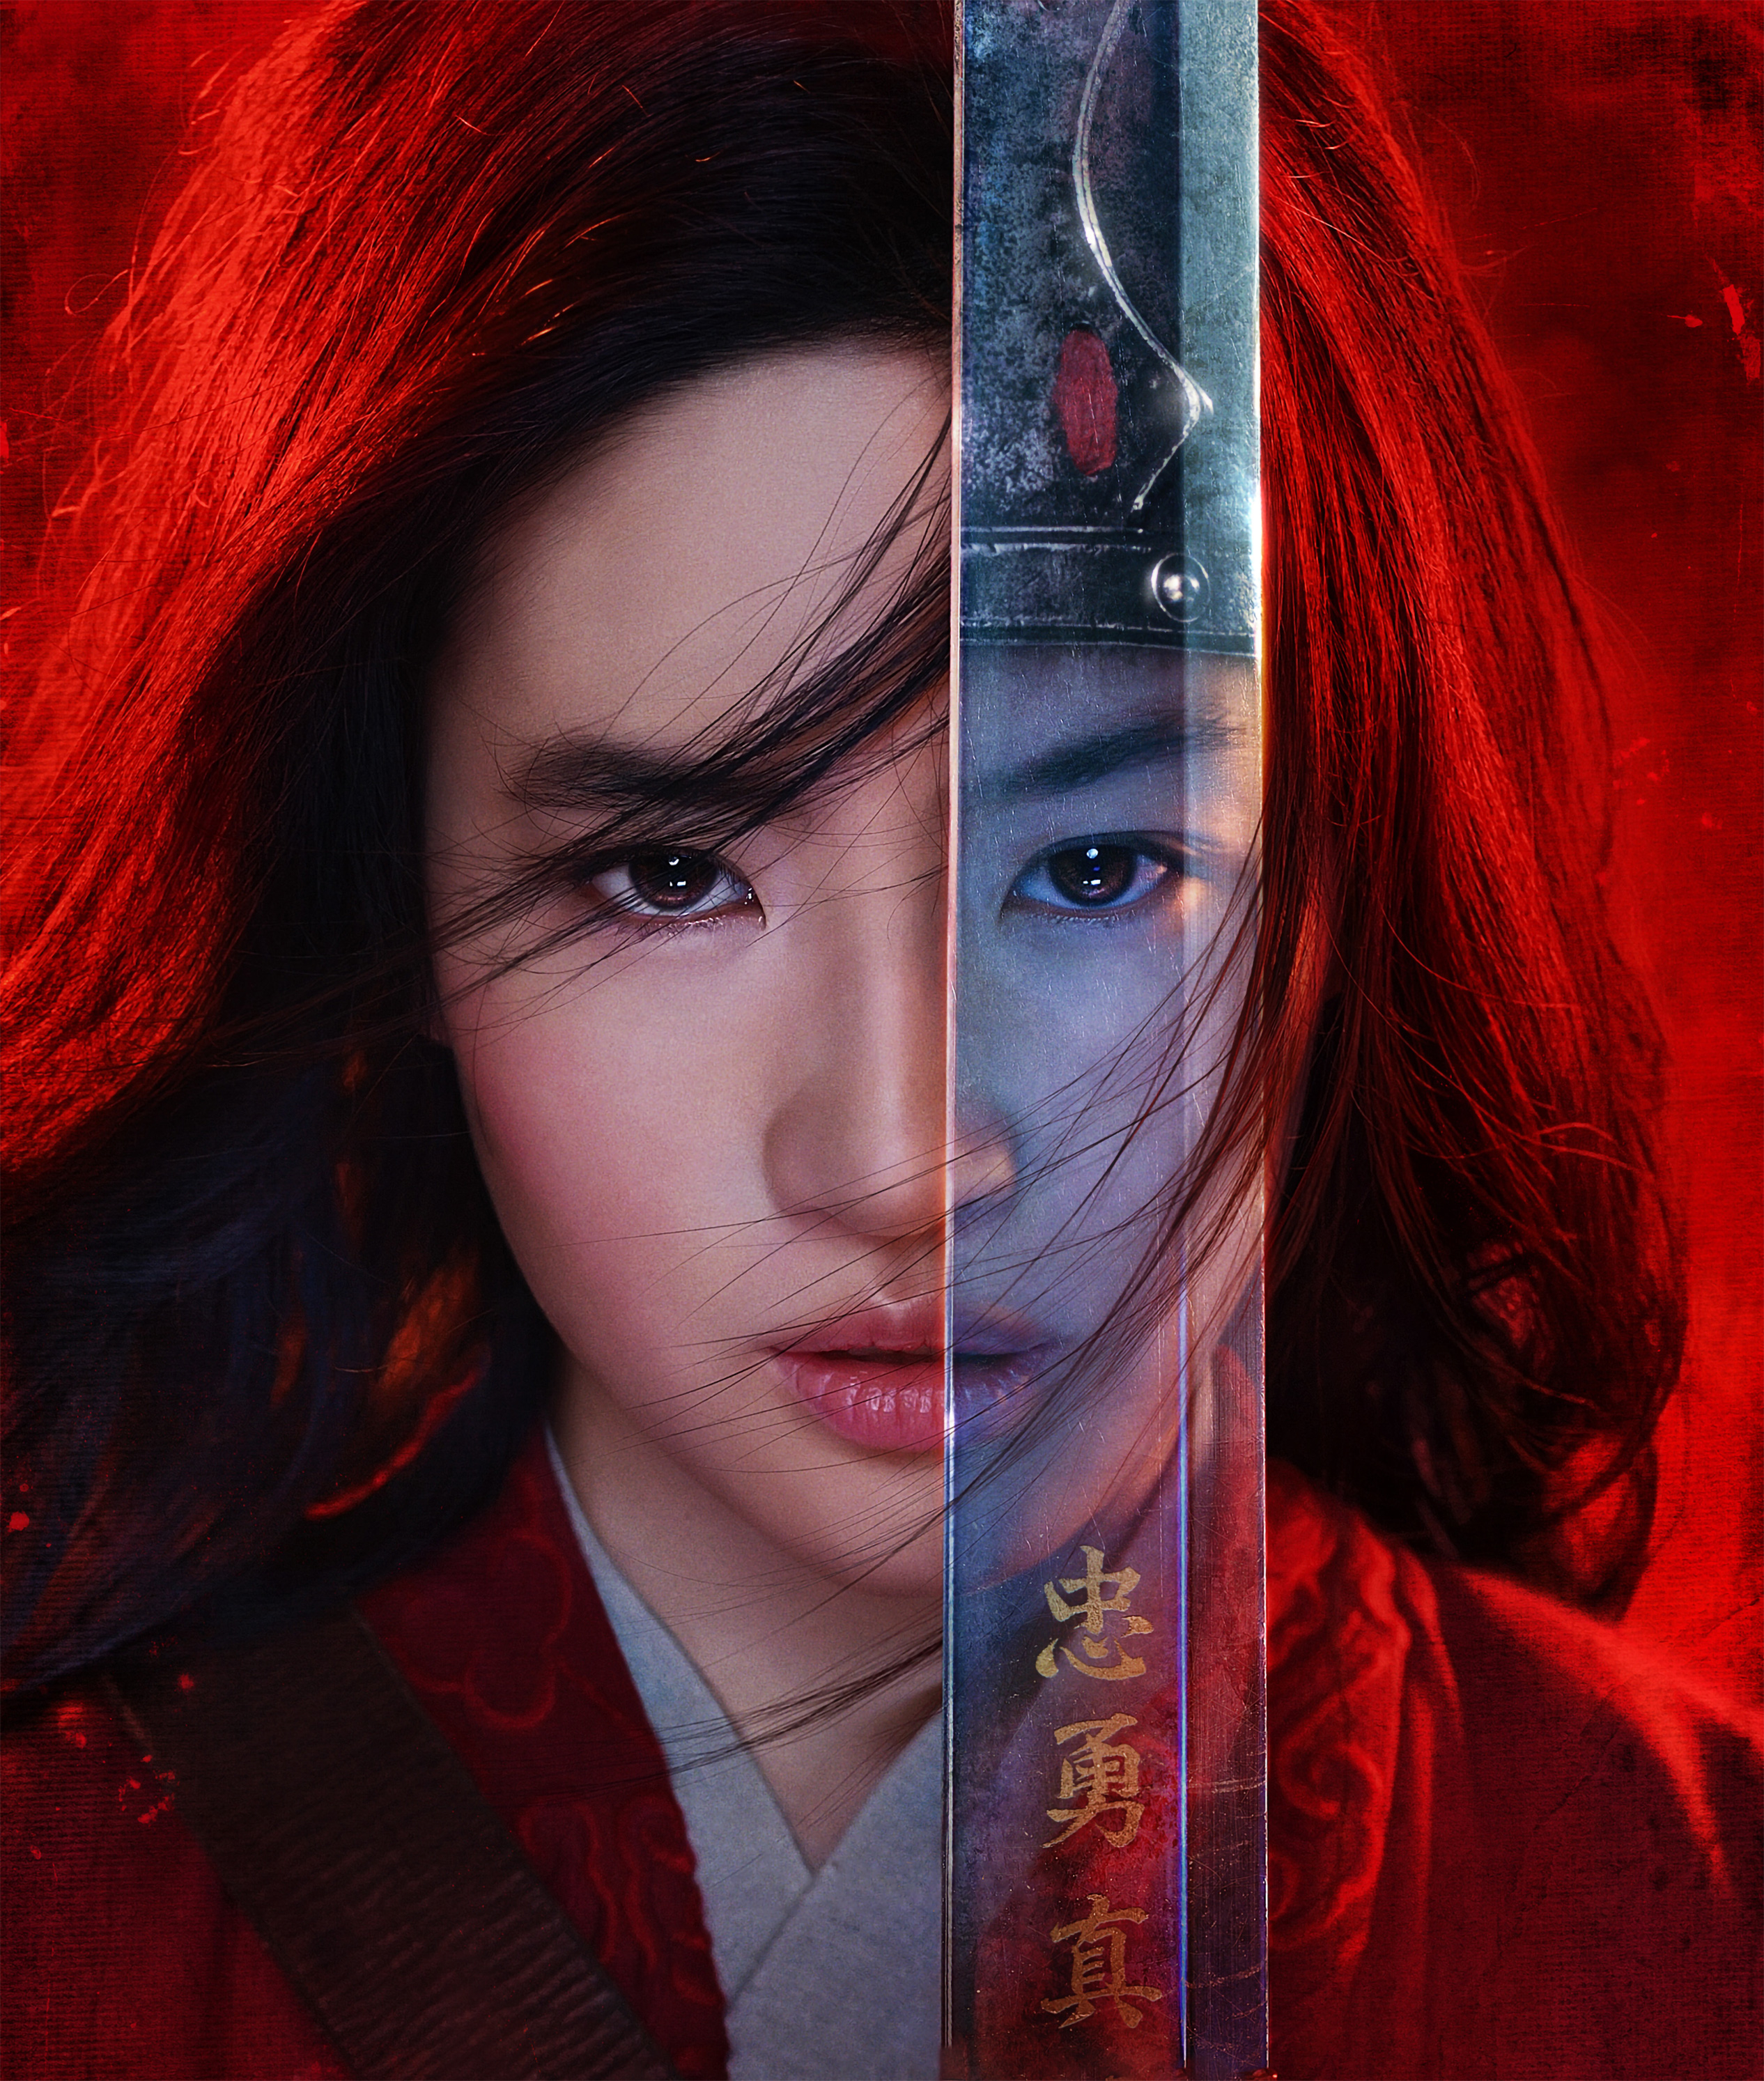 Mulan 2020 Movie Poster Wallpaper Hd Movies 4k Wallpapers Images Photos And Background